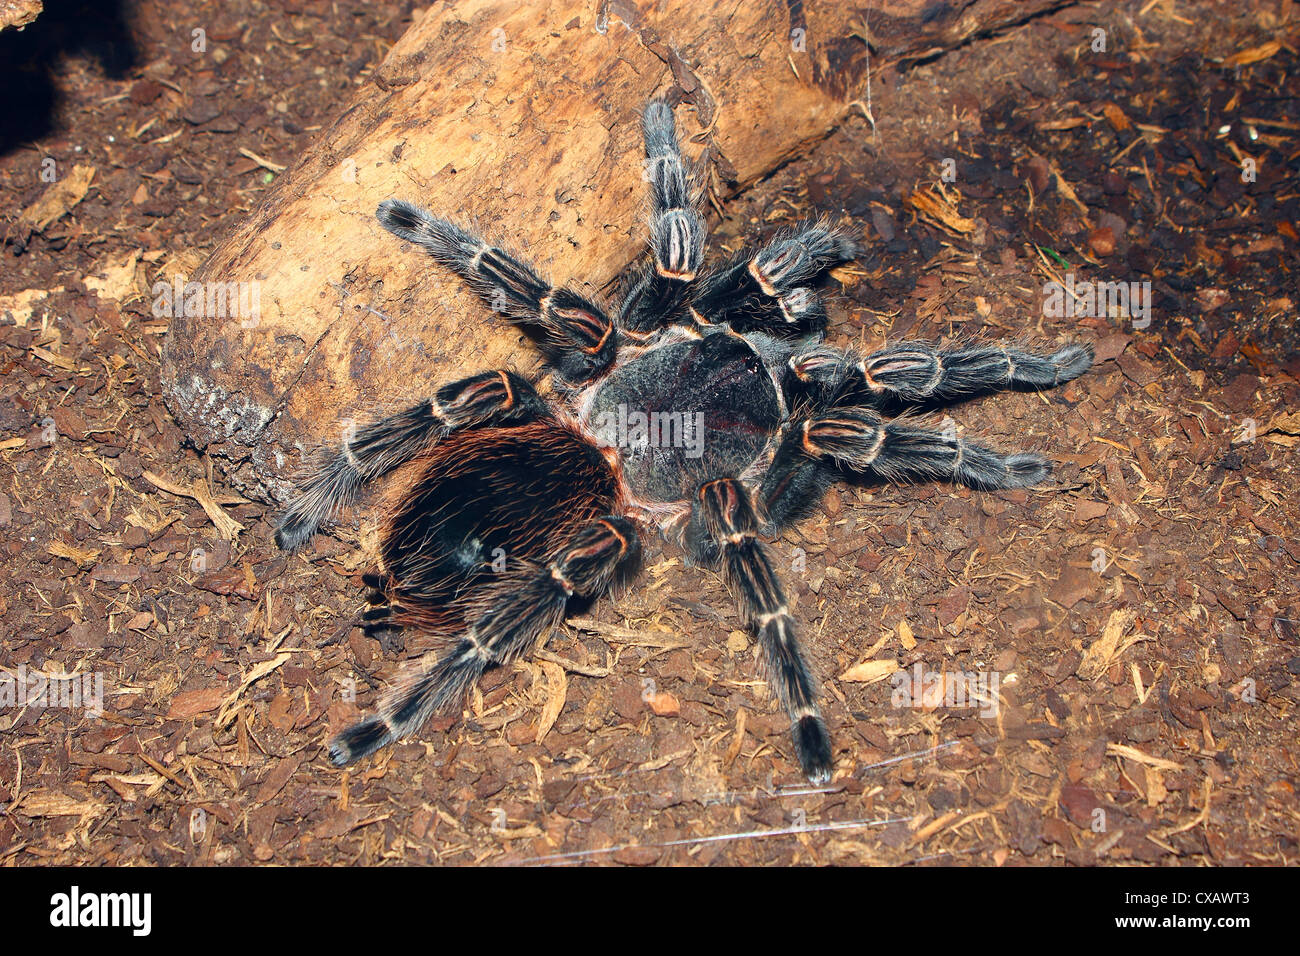 Brazilian salmon pink bird-eating tarantula (Lasiodora parahybana) originating from northeastern Brazil, South America - Stock Image